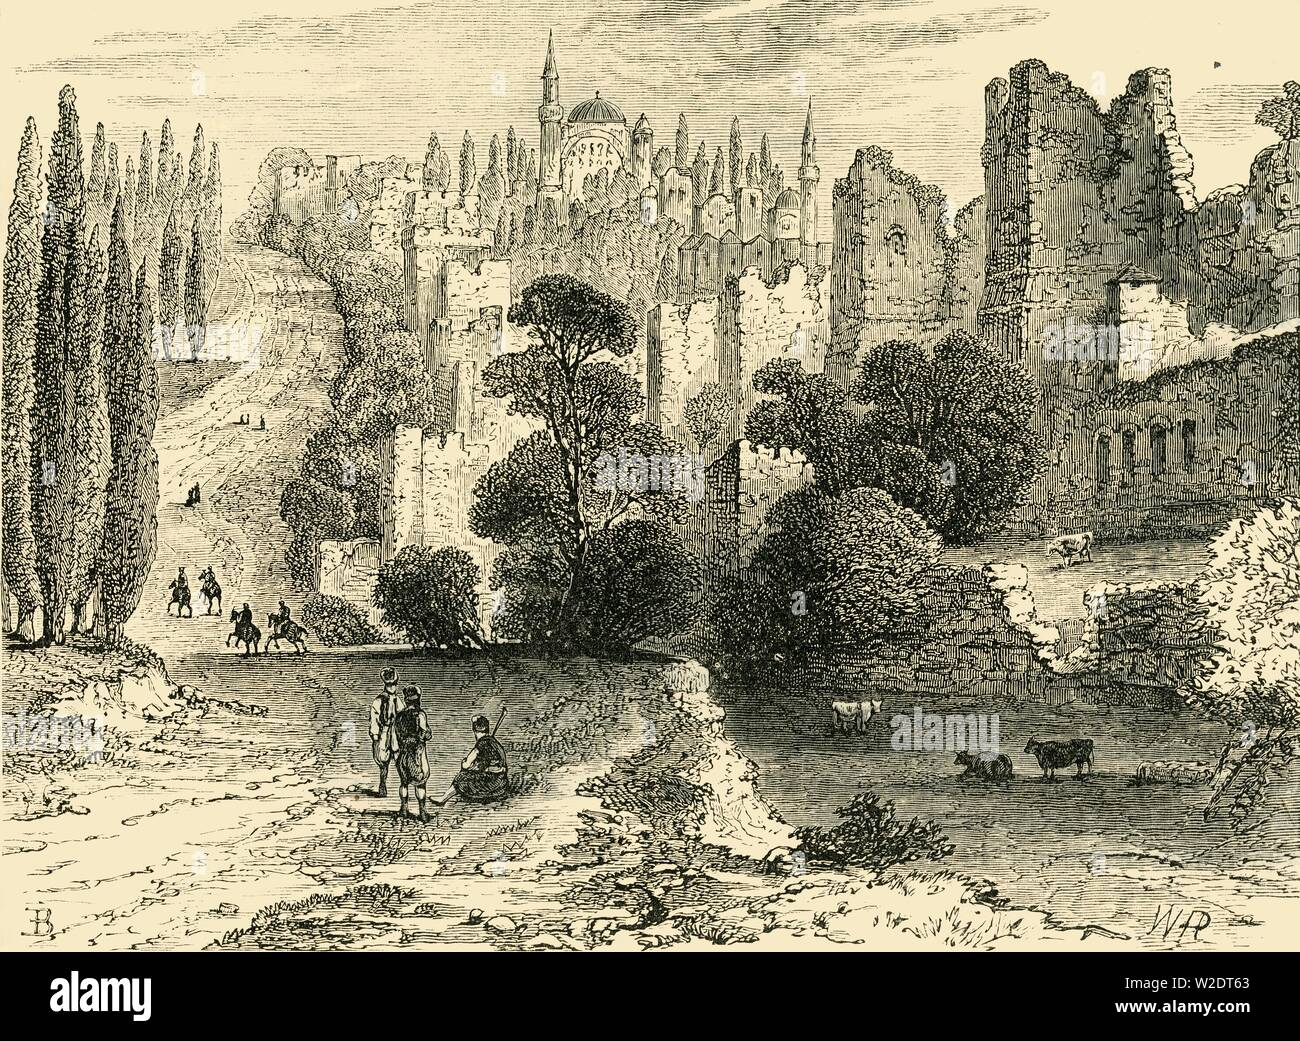 """'Walls of Constaninople in the Sixteenth Century', (1890). Known as Istanbul today, Constantinople was capital of the Byzantine Empire, until Muslim conquest in 1453 when it became capital of the Ottoman Empire, the population grew to 700,000 in the 16th century. From """"Cassell's Illustrated Universal History, Vol. III - The Middle Ages"""", by Edmund Ollier. [Cassell and Company, Limited, London, Paris and Melbourne, 1890. ] - Stock Image"""